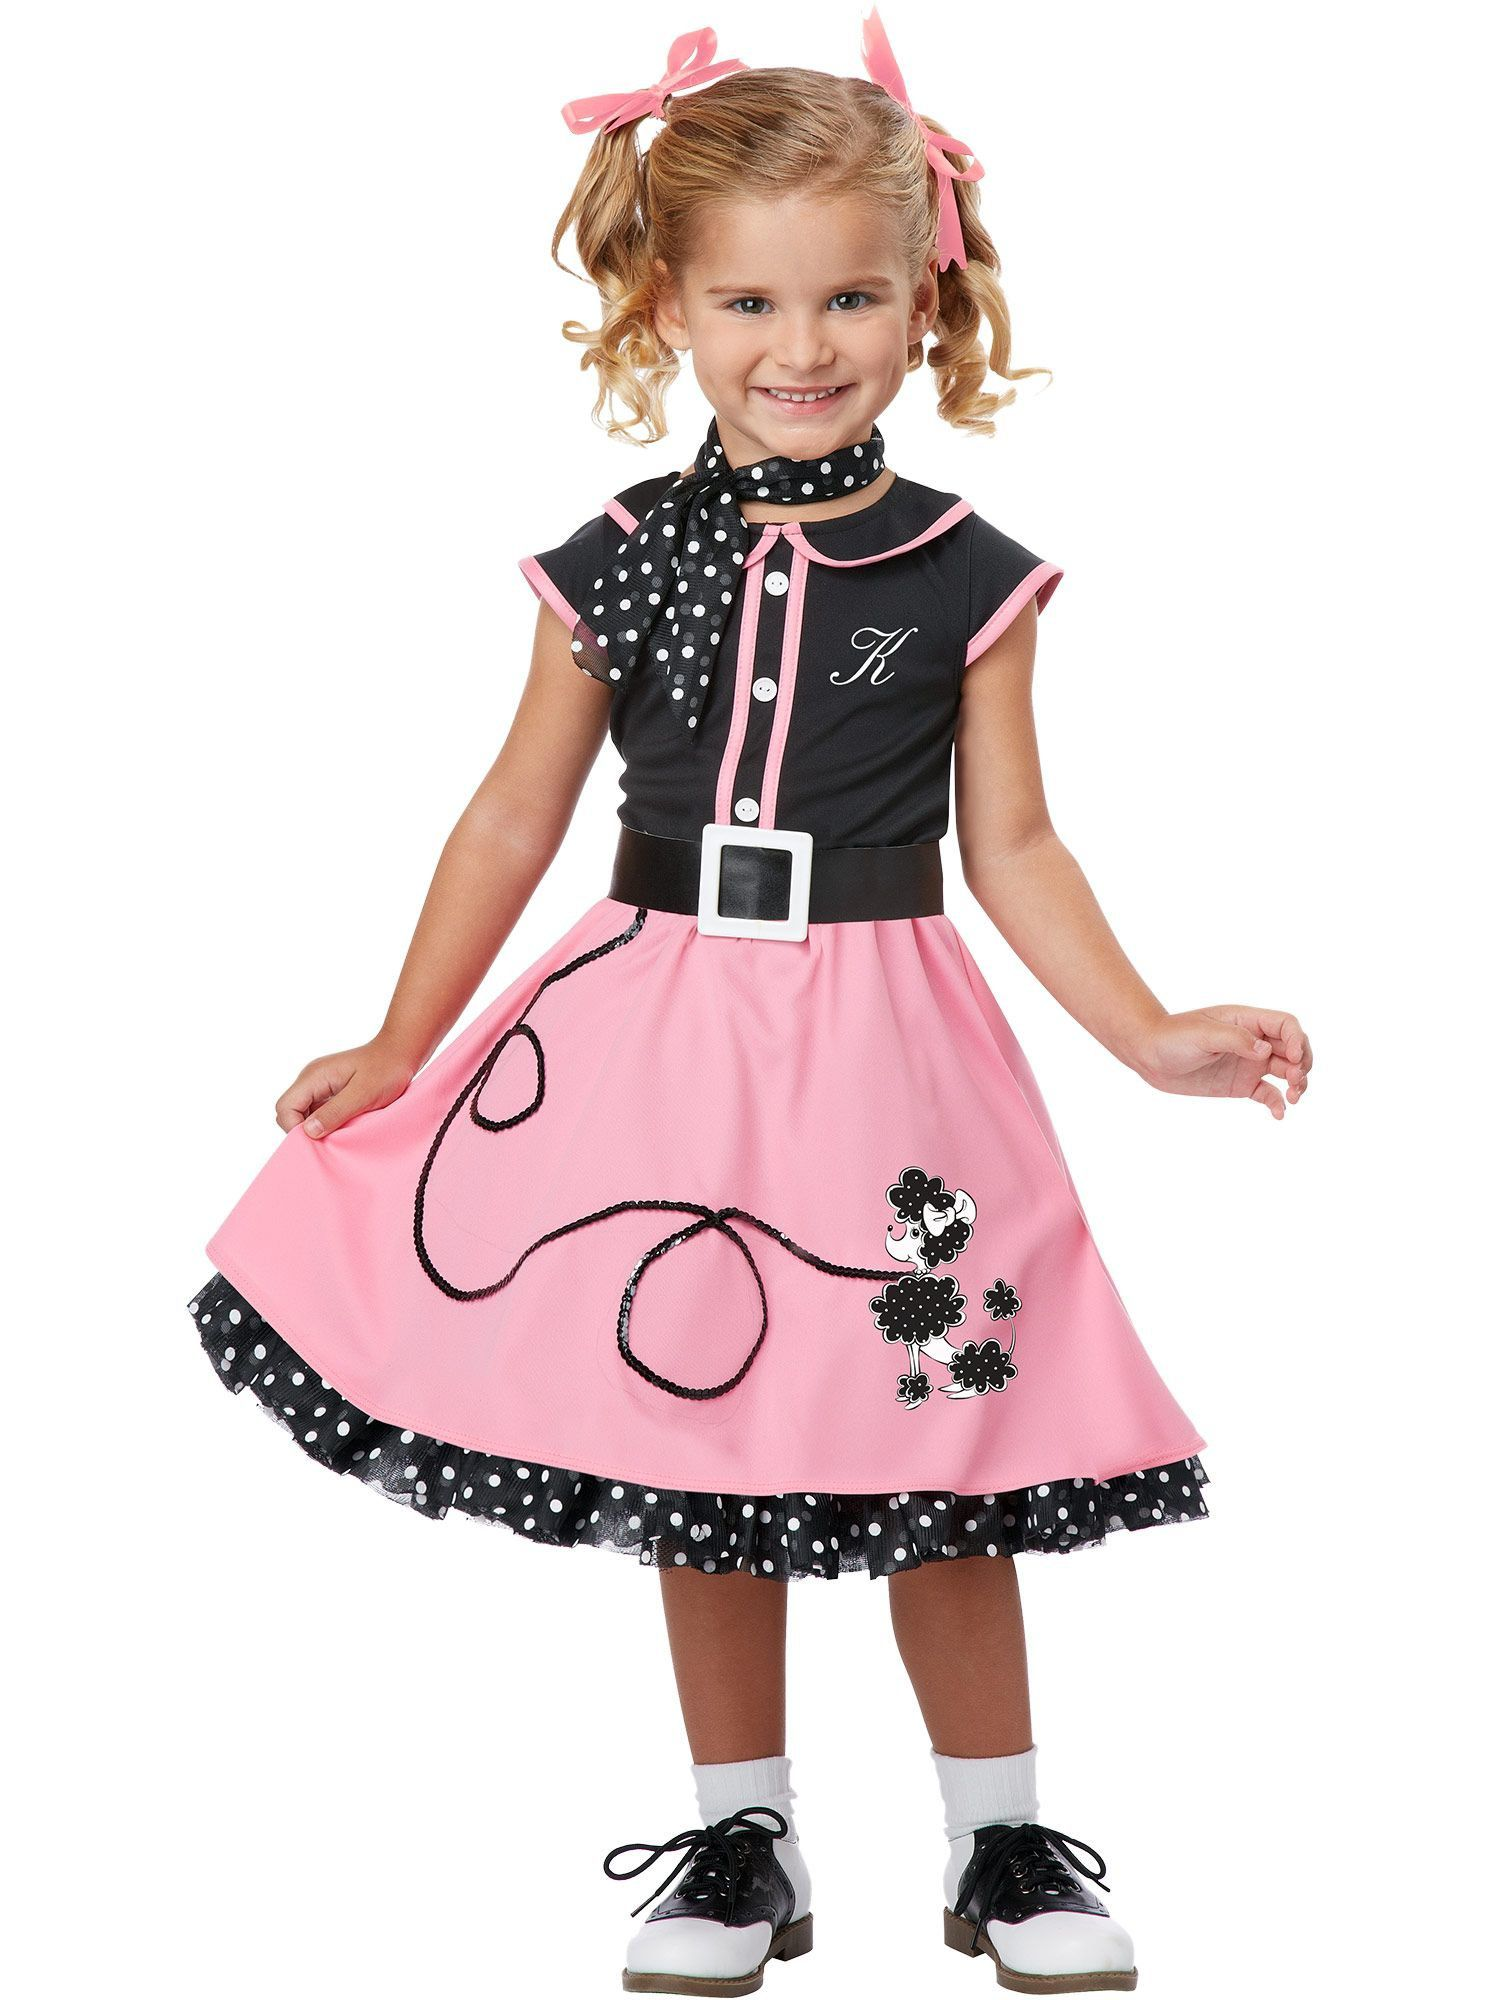 50u0027s Poodle Cutie Costume Toddler  sc 1 st  Wholesale Halloween Costumes & Toddler 50u0027s Poodle Cutie Costume - 50u0027s Costumes for Babies